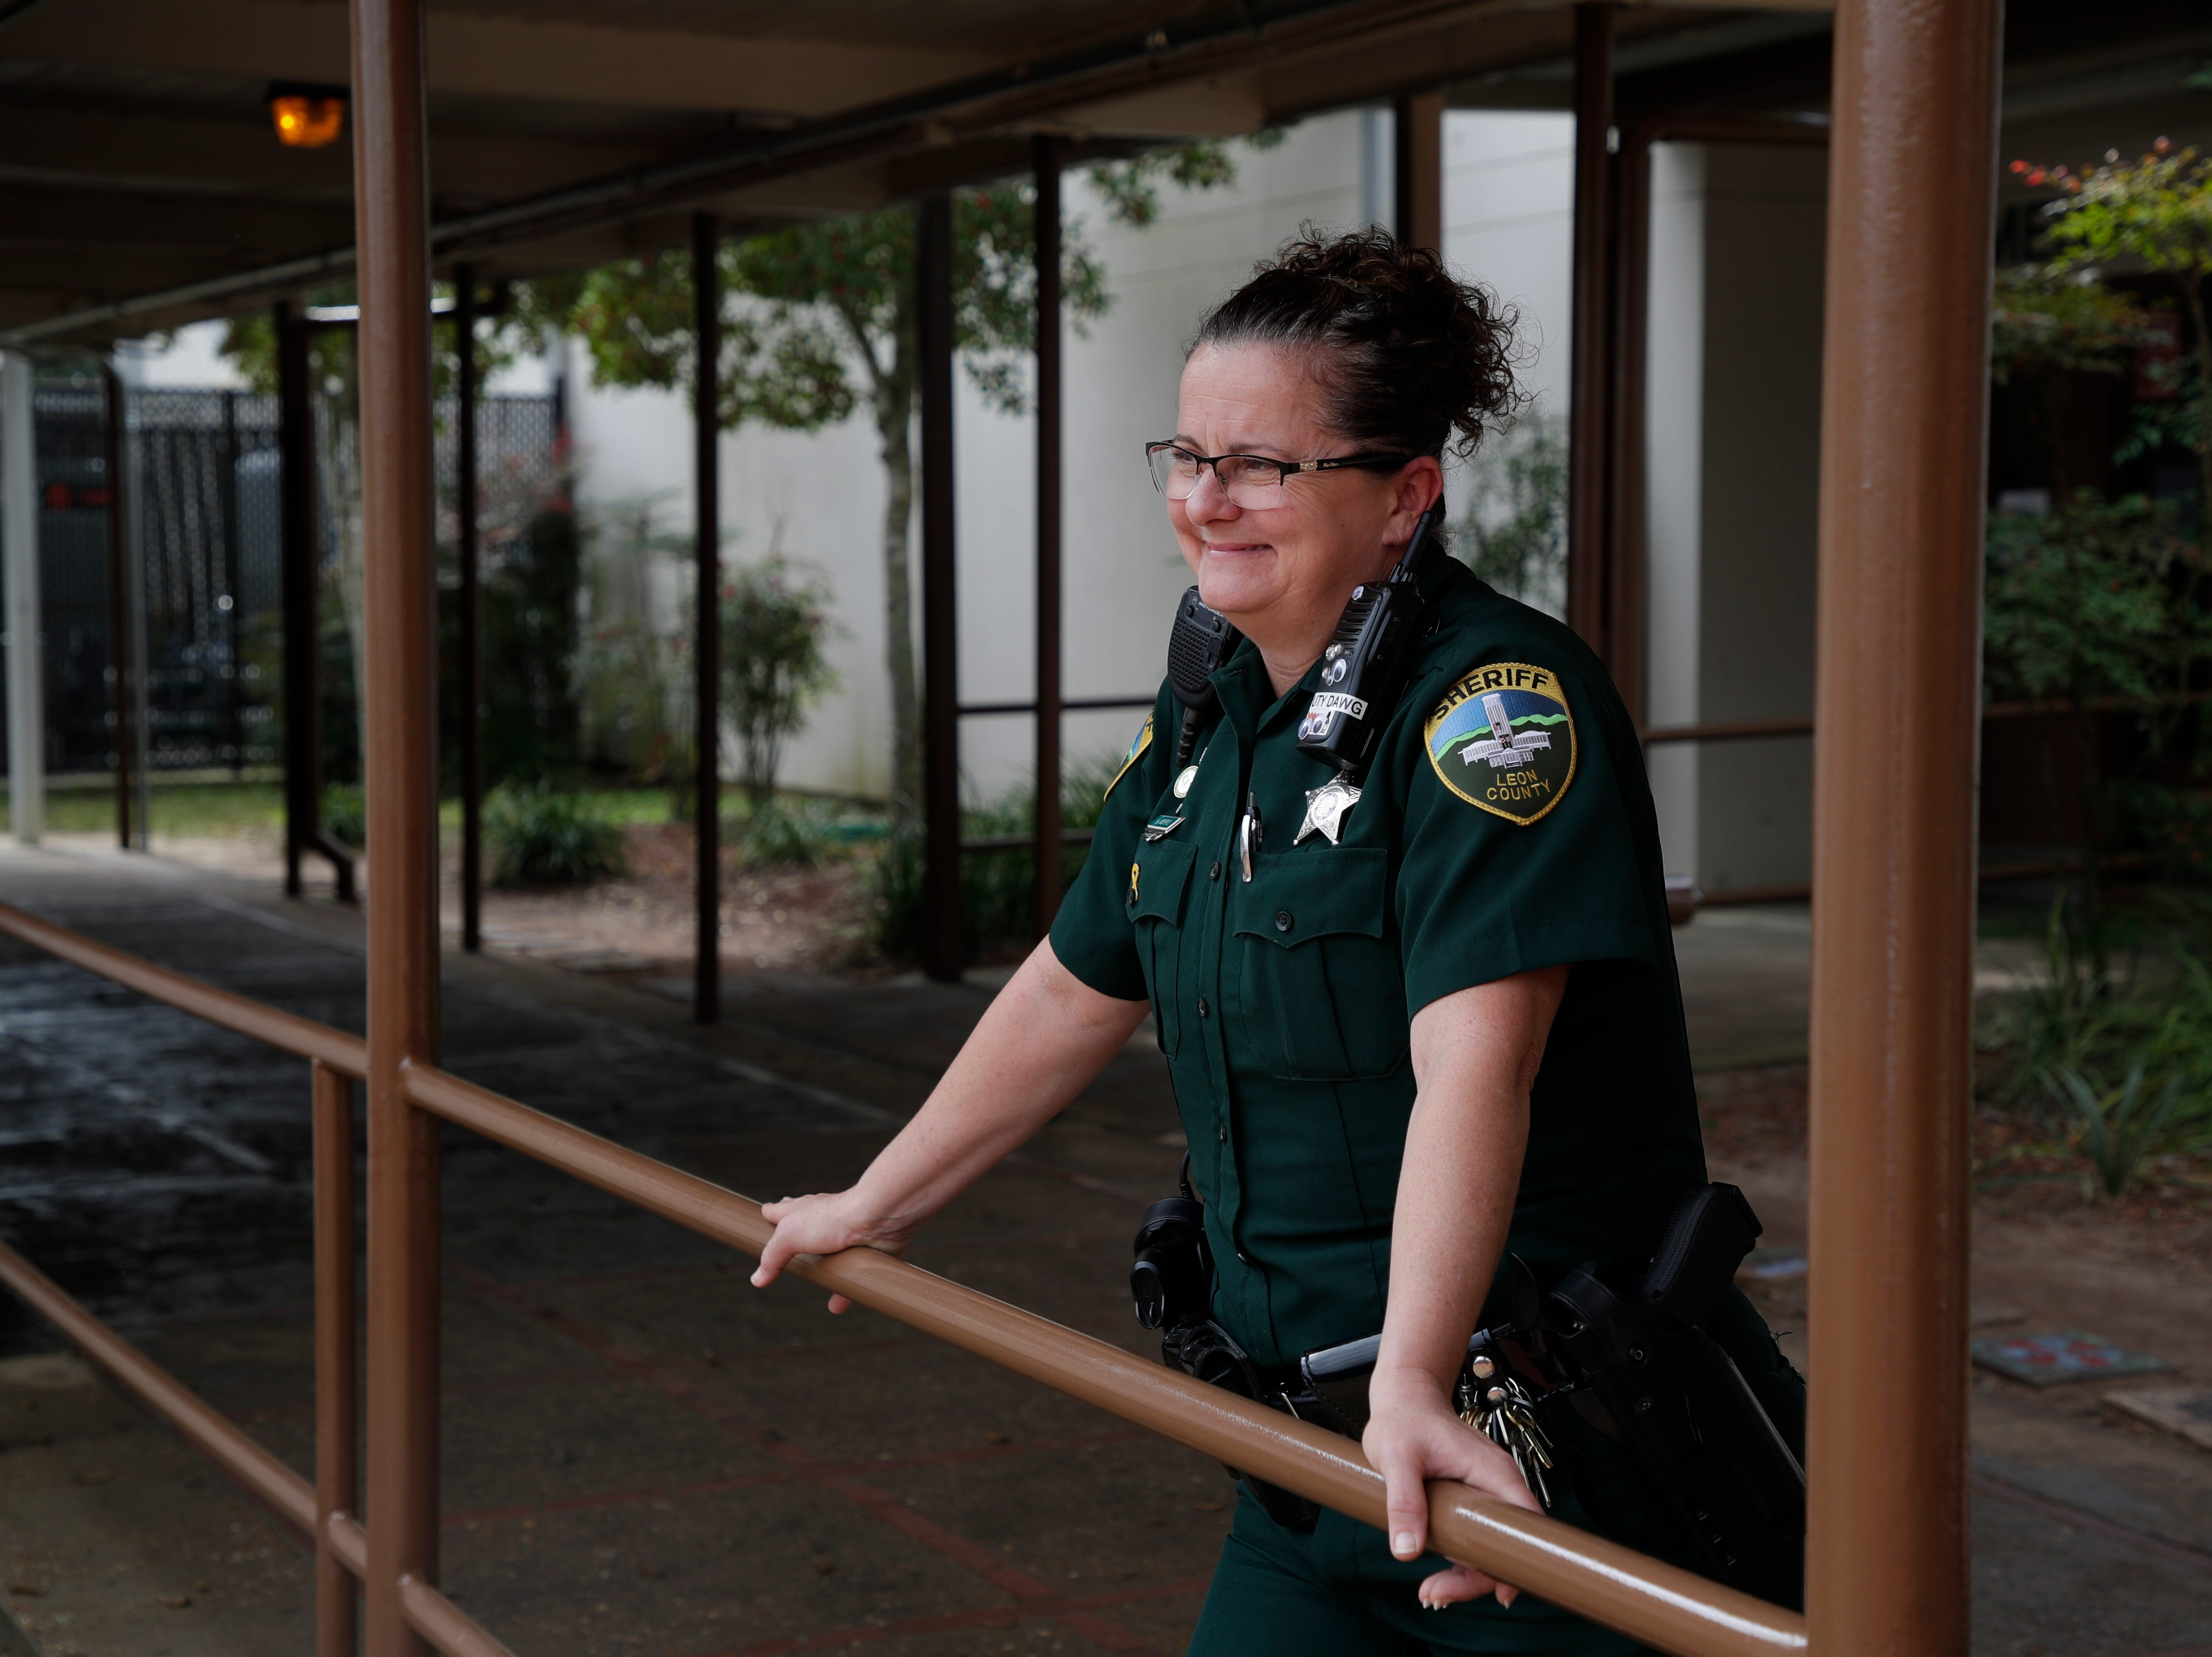 Leon County Sheriff's Department Deputy Jennifer Morris, school resource officer at Cobb Middle School, watches as students head to class after lunch Tuesday, Feb. 12, 2019.